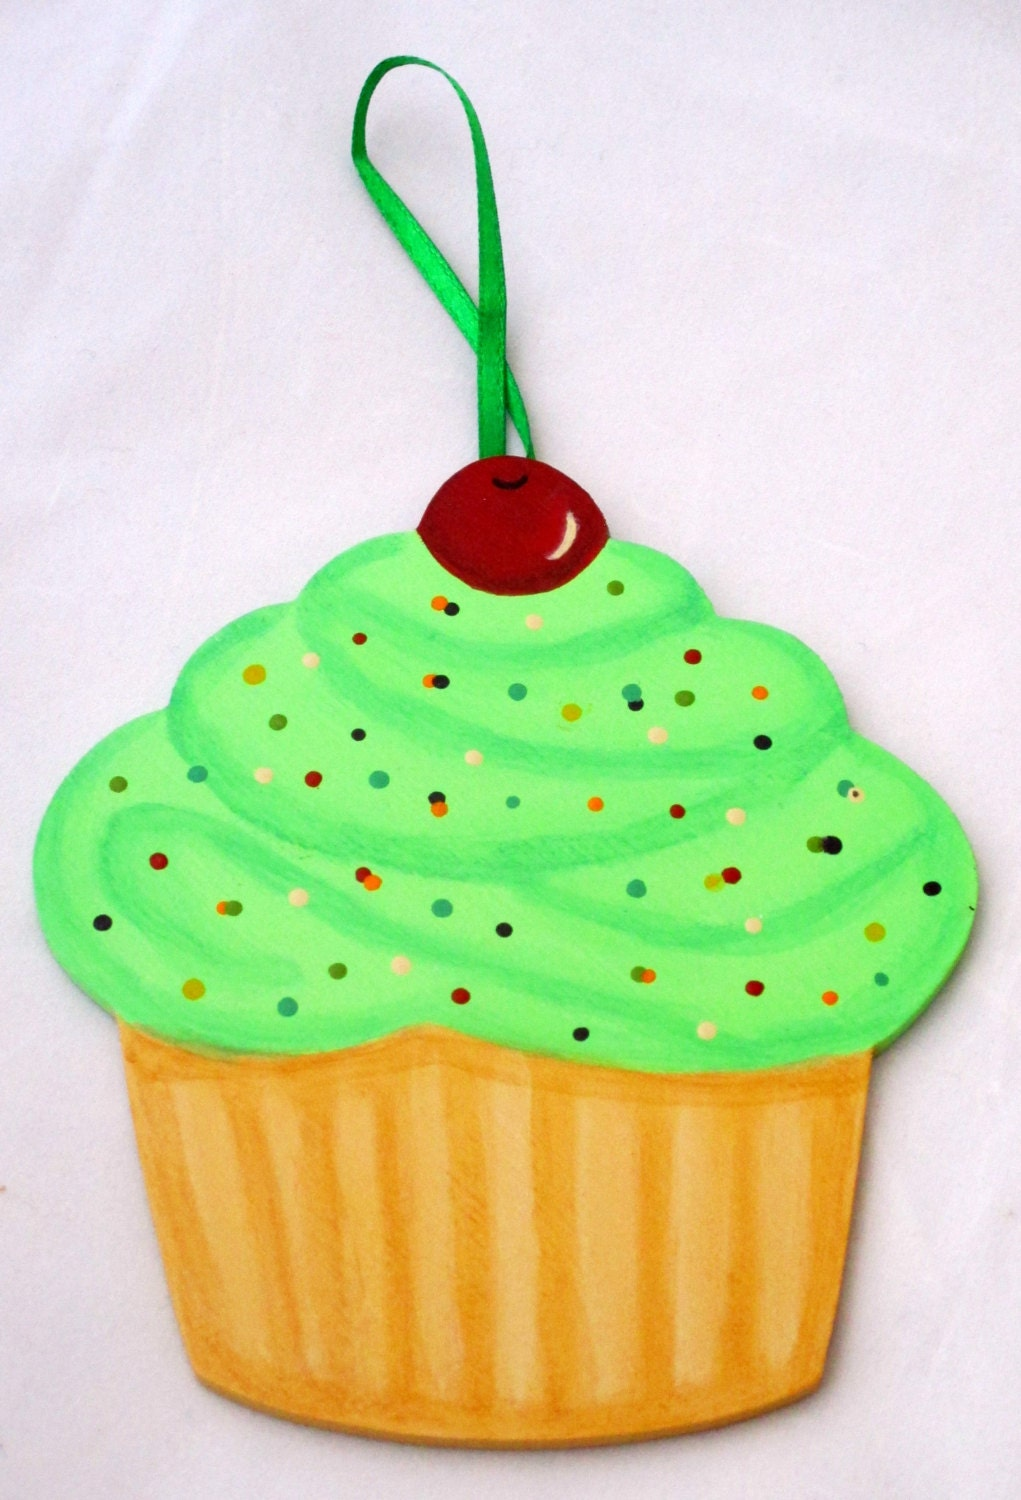 Cupcake Wall Hanging Hand Painted cupcake decor wall